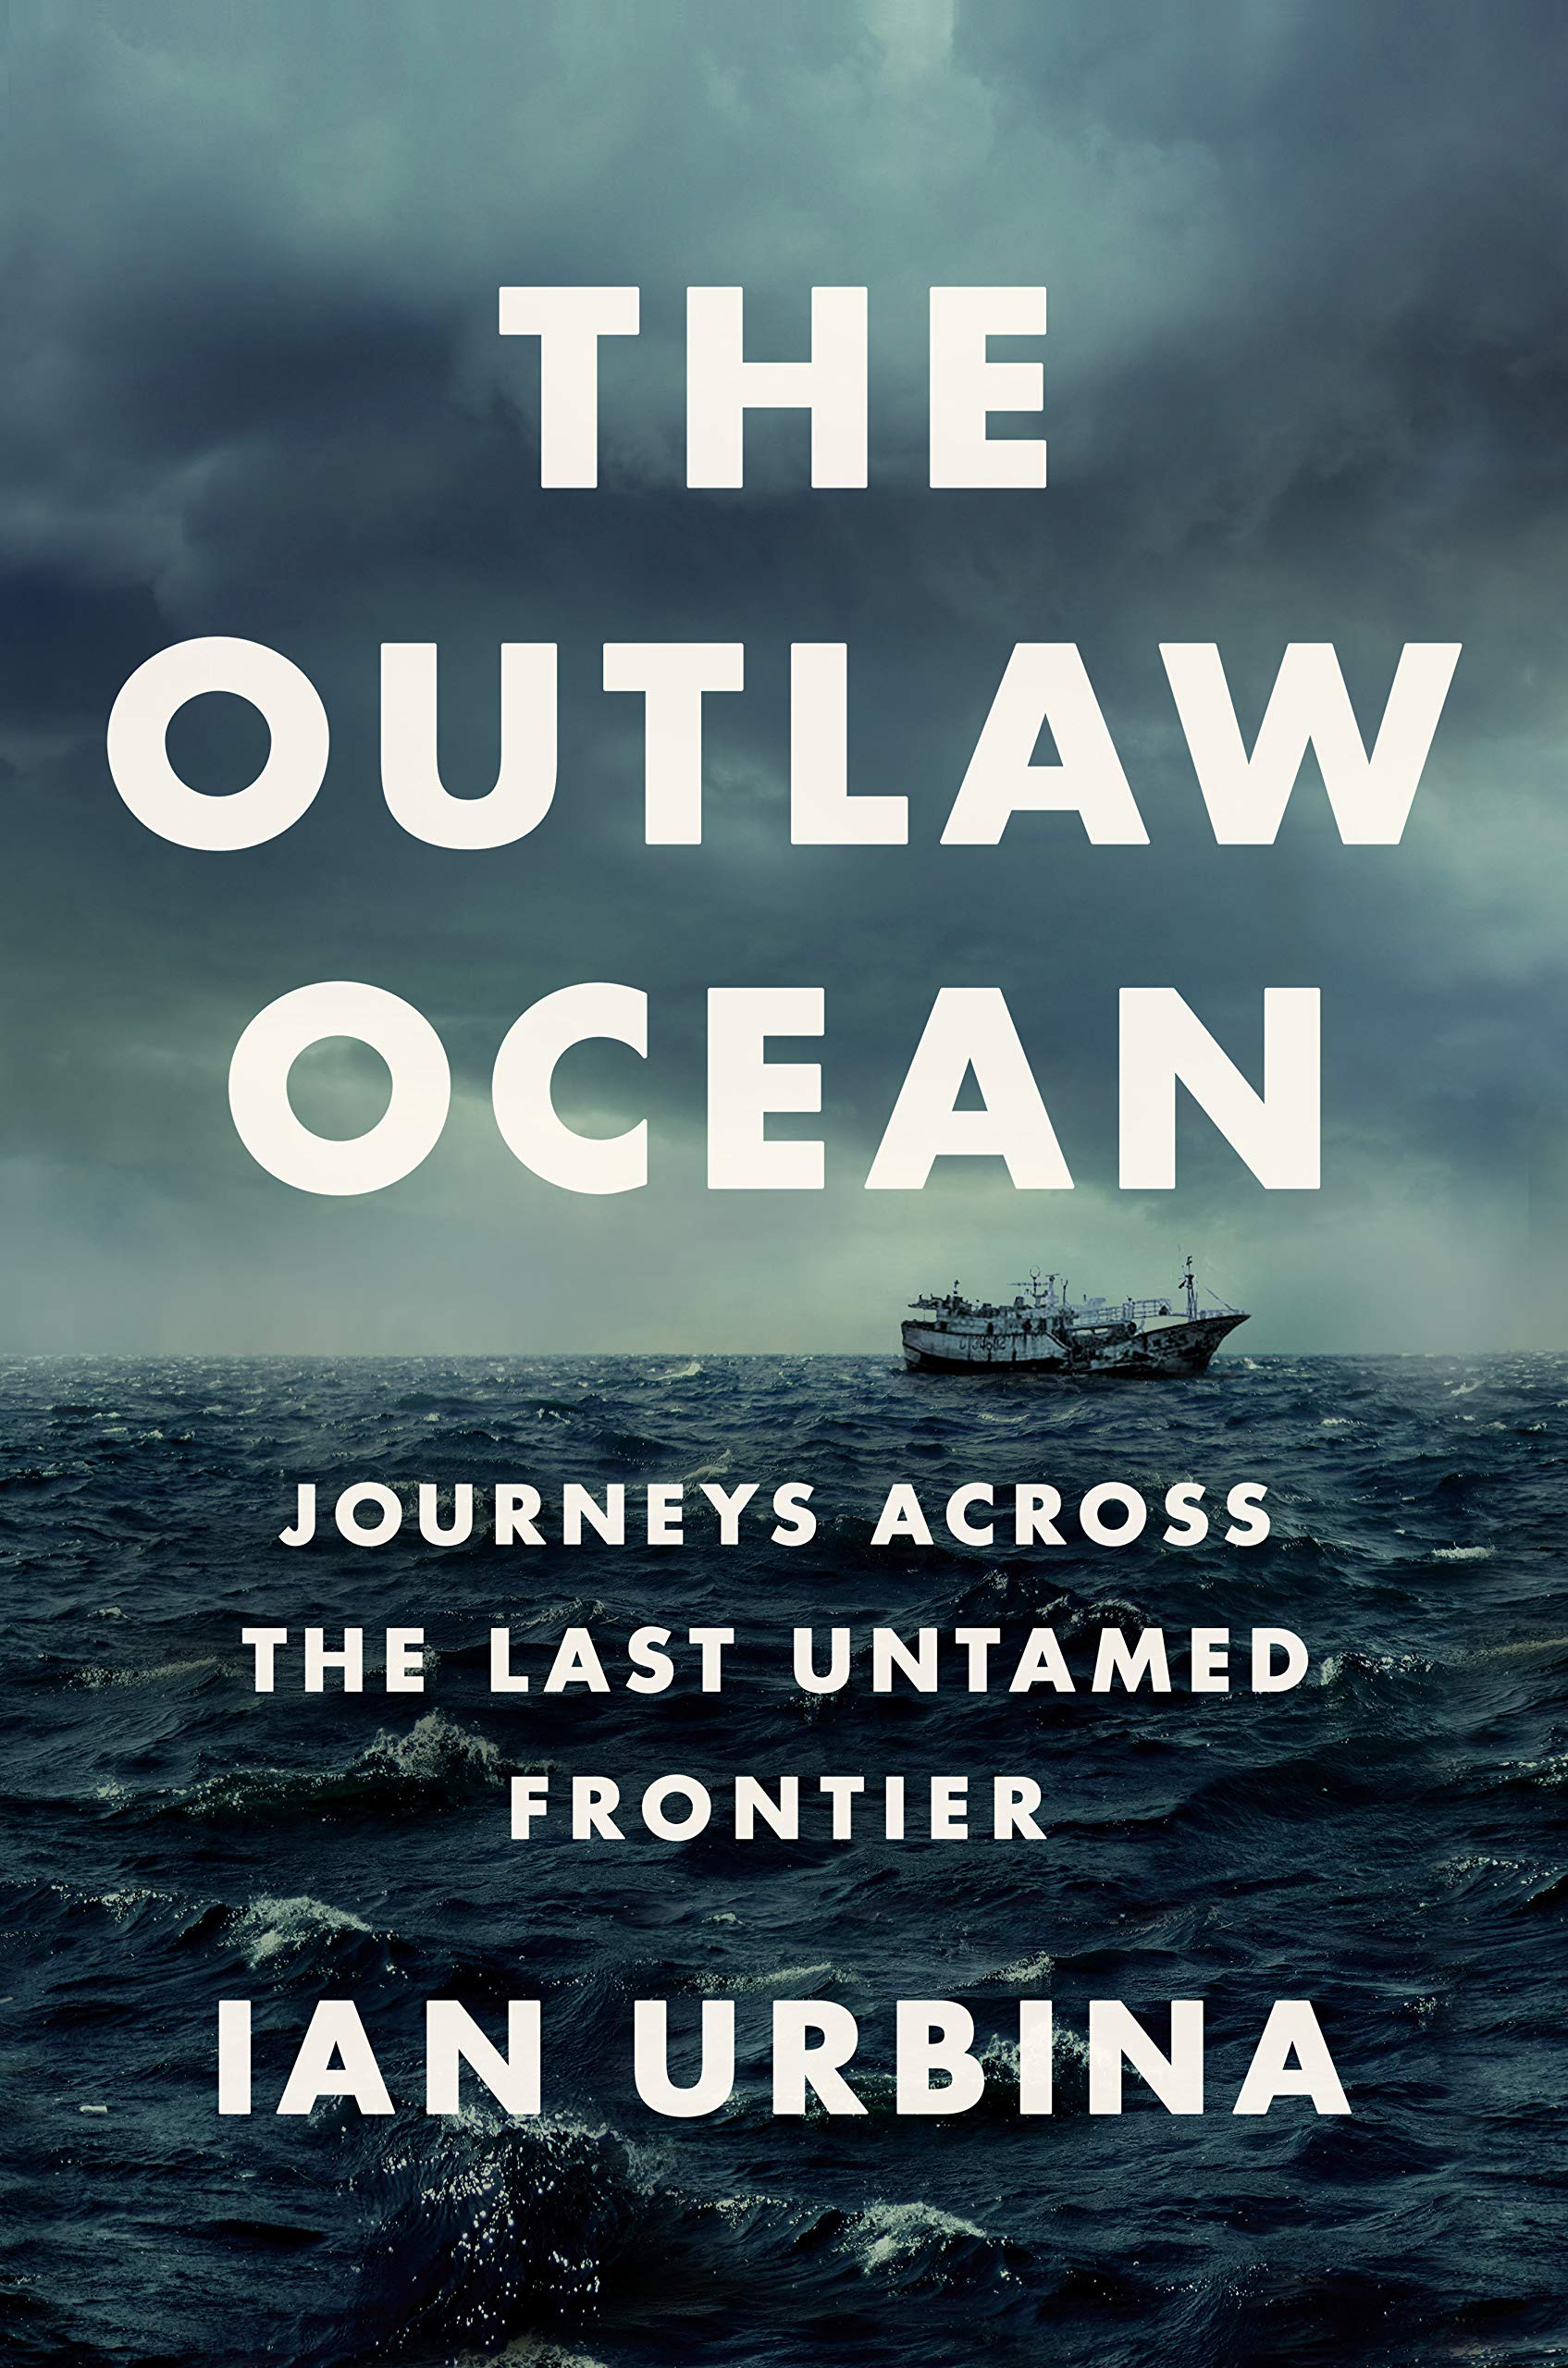 The Outlaw Ocean: Journeys Across the Last Untamed Frontier by Knopf